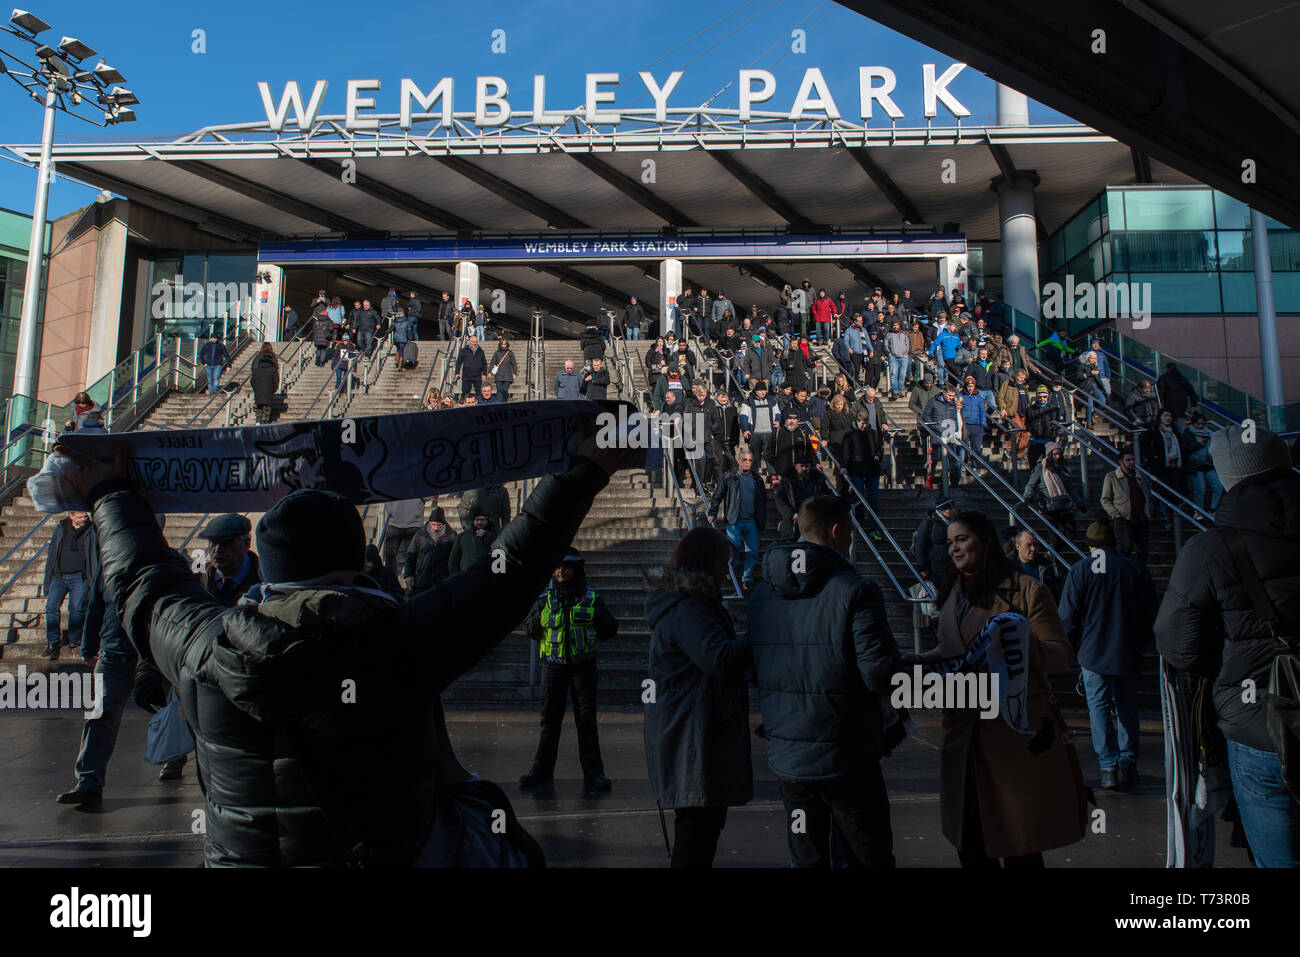 Scarves sellers wait outside Wembley Park station for the thousands of football supporters at Wembley Park for a Premier League game between Tottenham - Stock Image